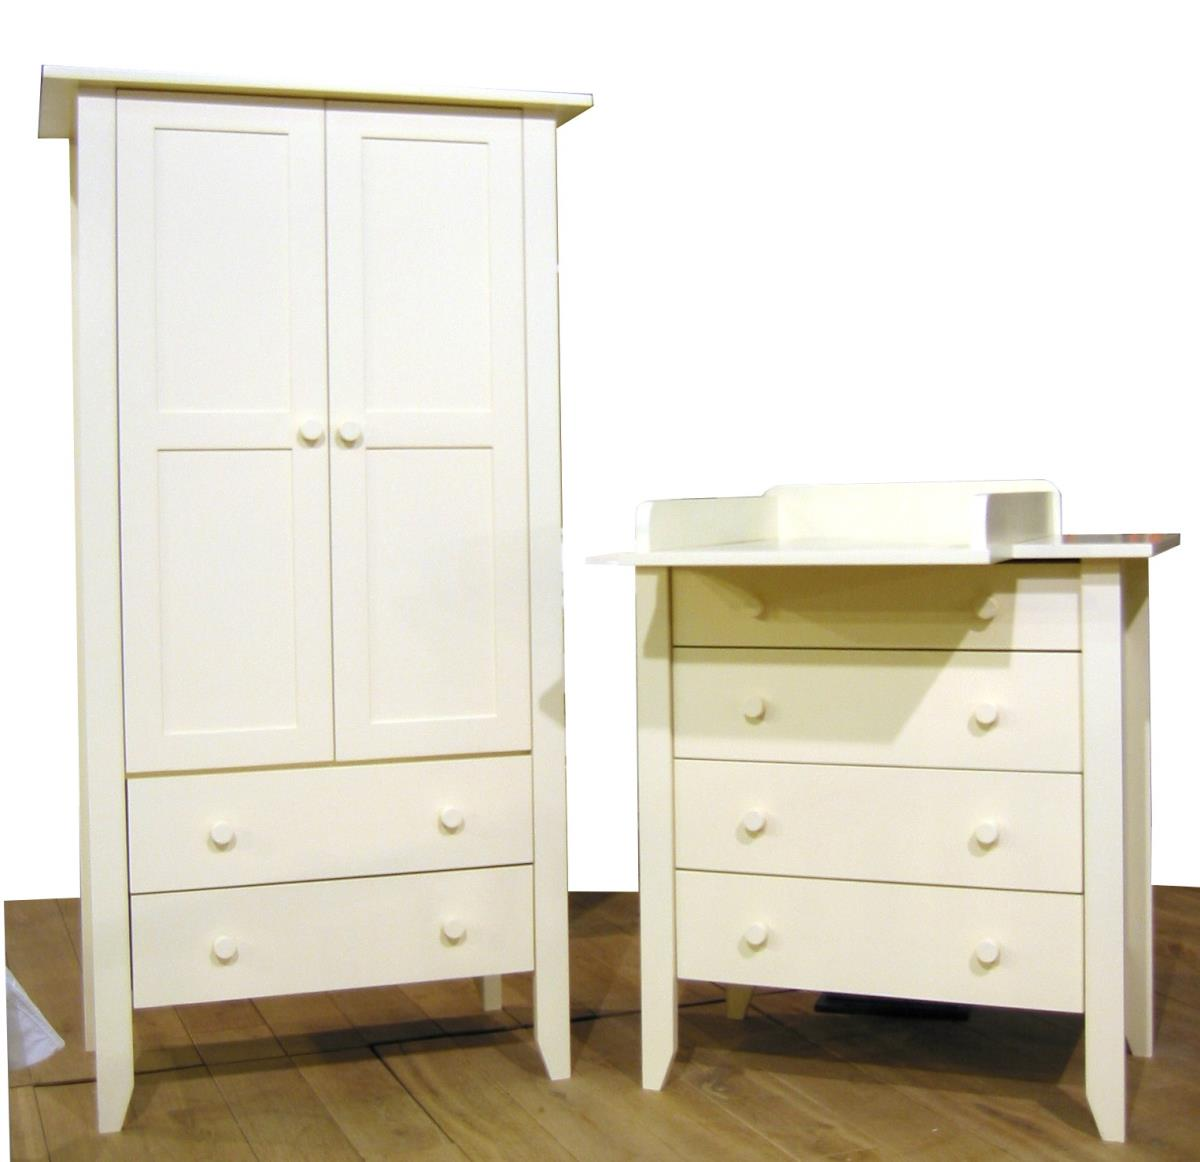 couleurs bois meubles b b s et enfants avignon 41 rue. Black Bedroom Furniture Sets. Home Design Ideas